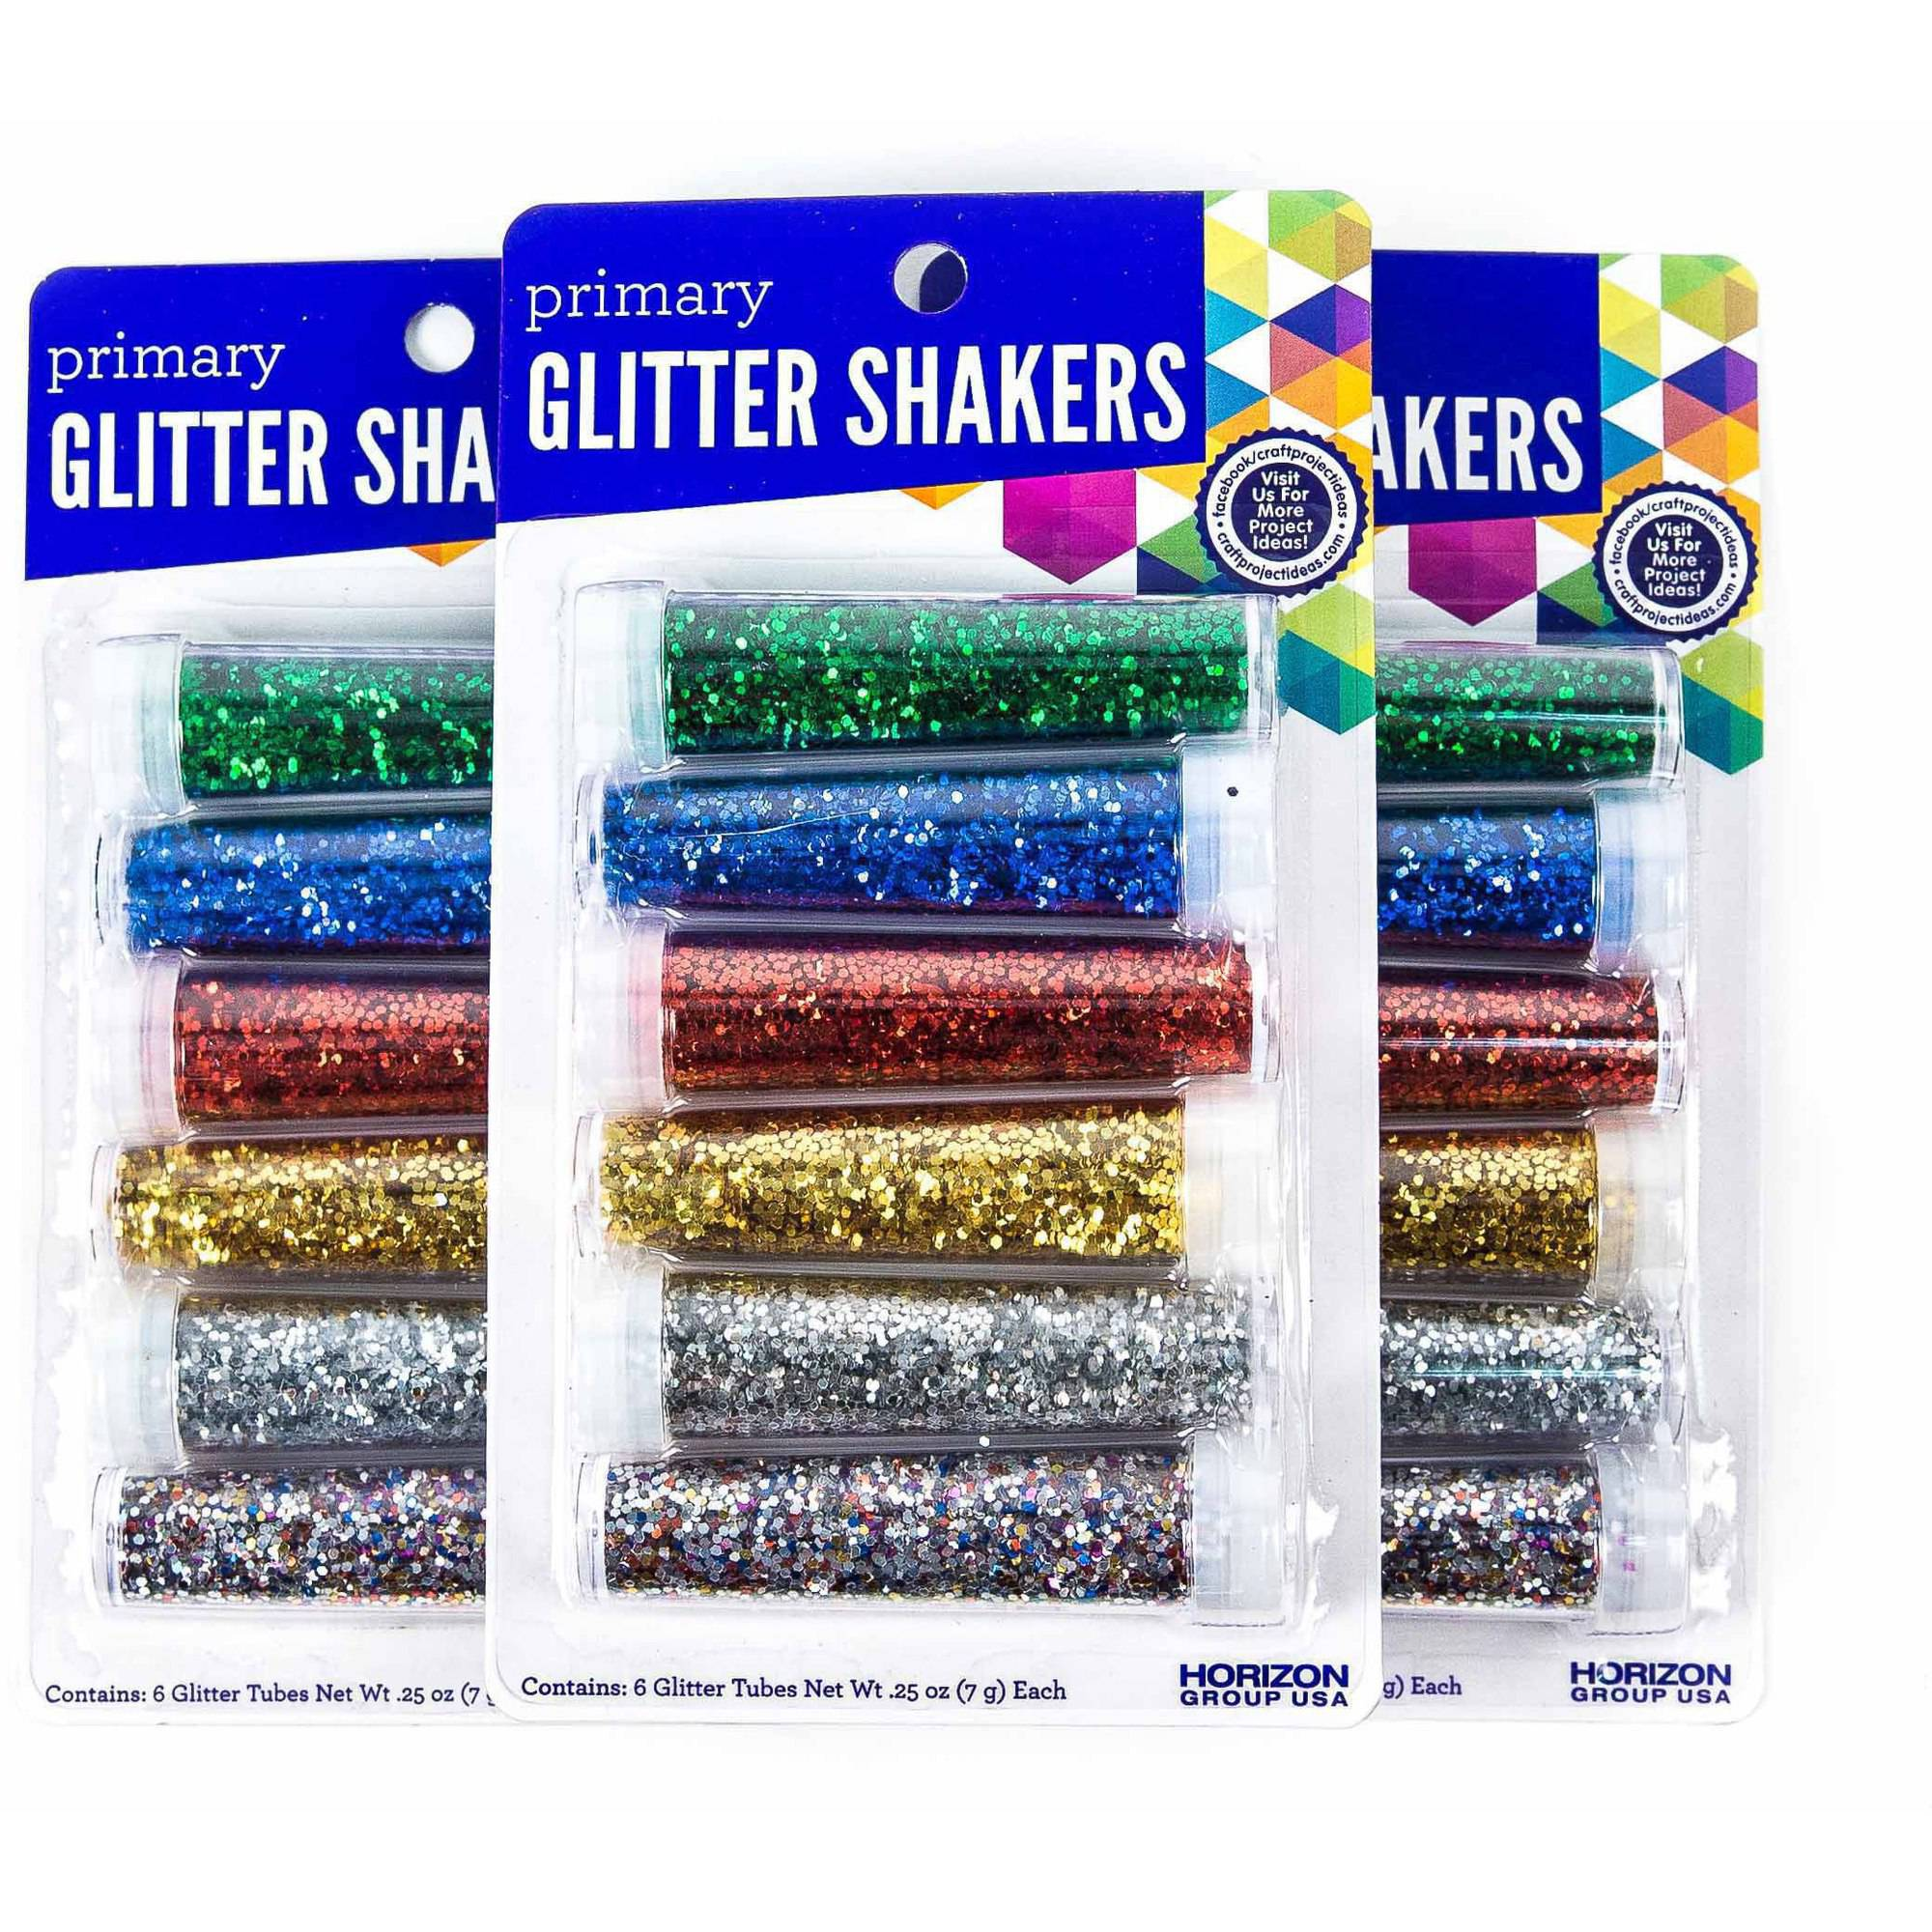 Primary Glitter Shakers, 3PKS - 6 ct. Each by Horizon Group USA